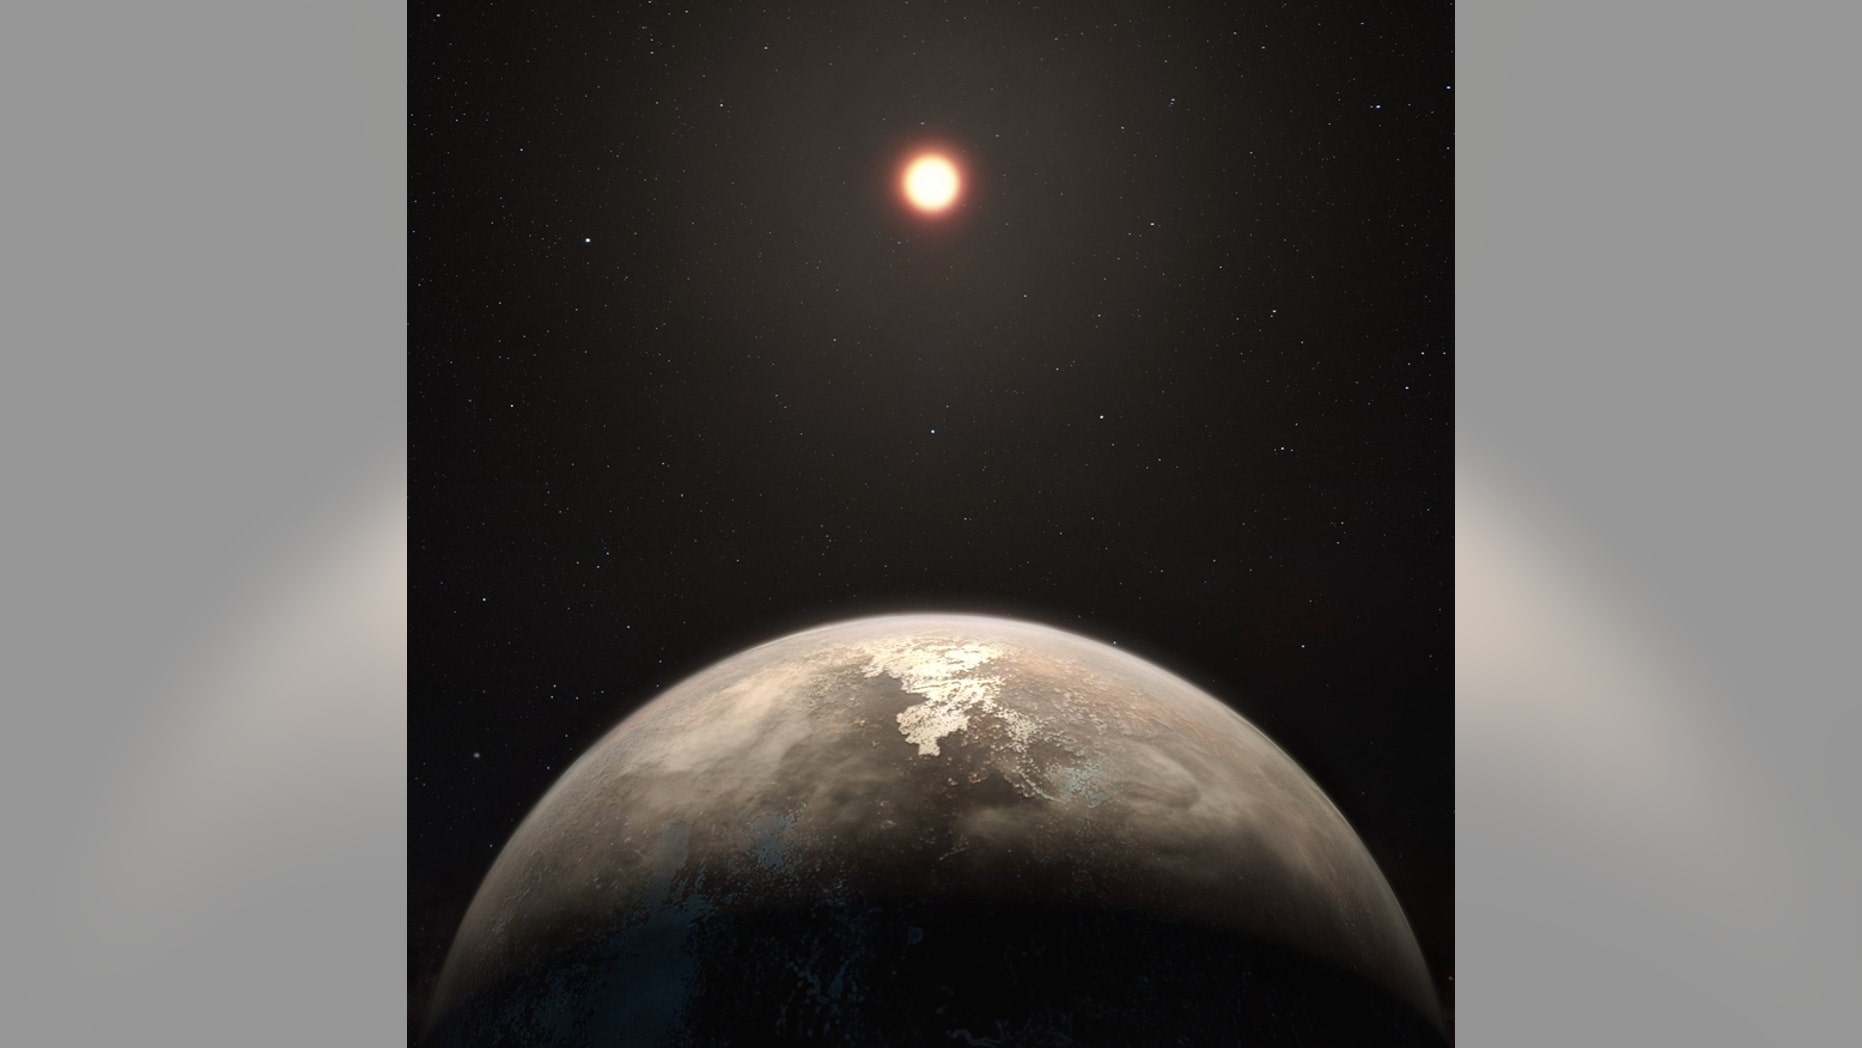 An artist's impression of the temperate planet Ross 128 b, with its red dwarf parent star in the background.